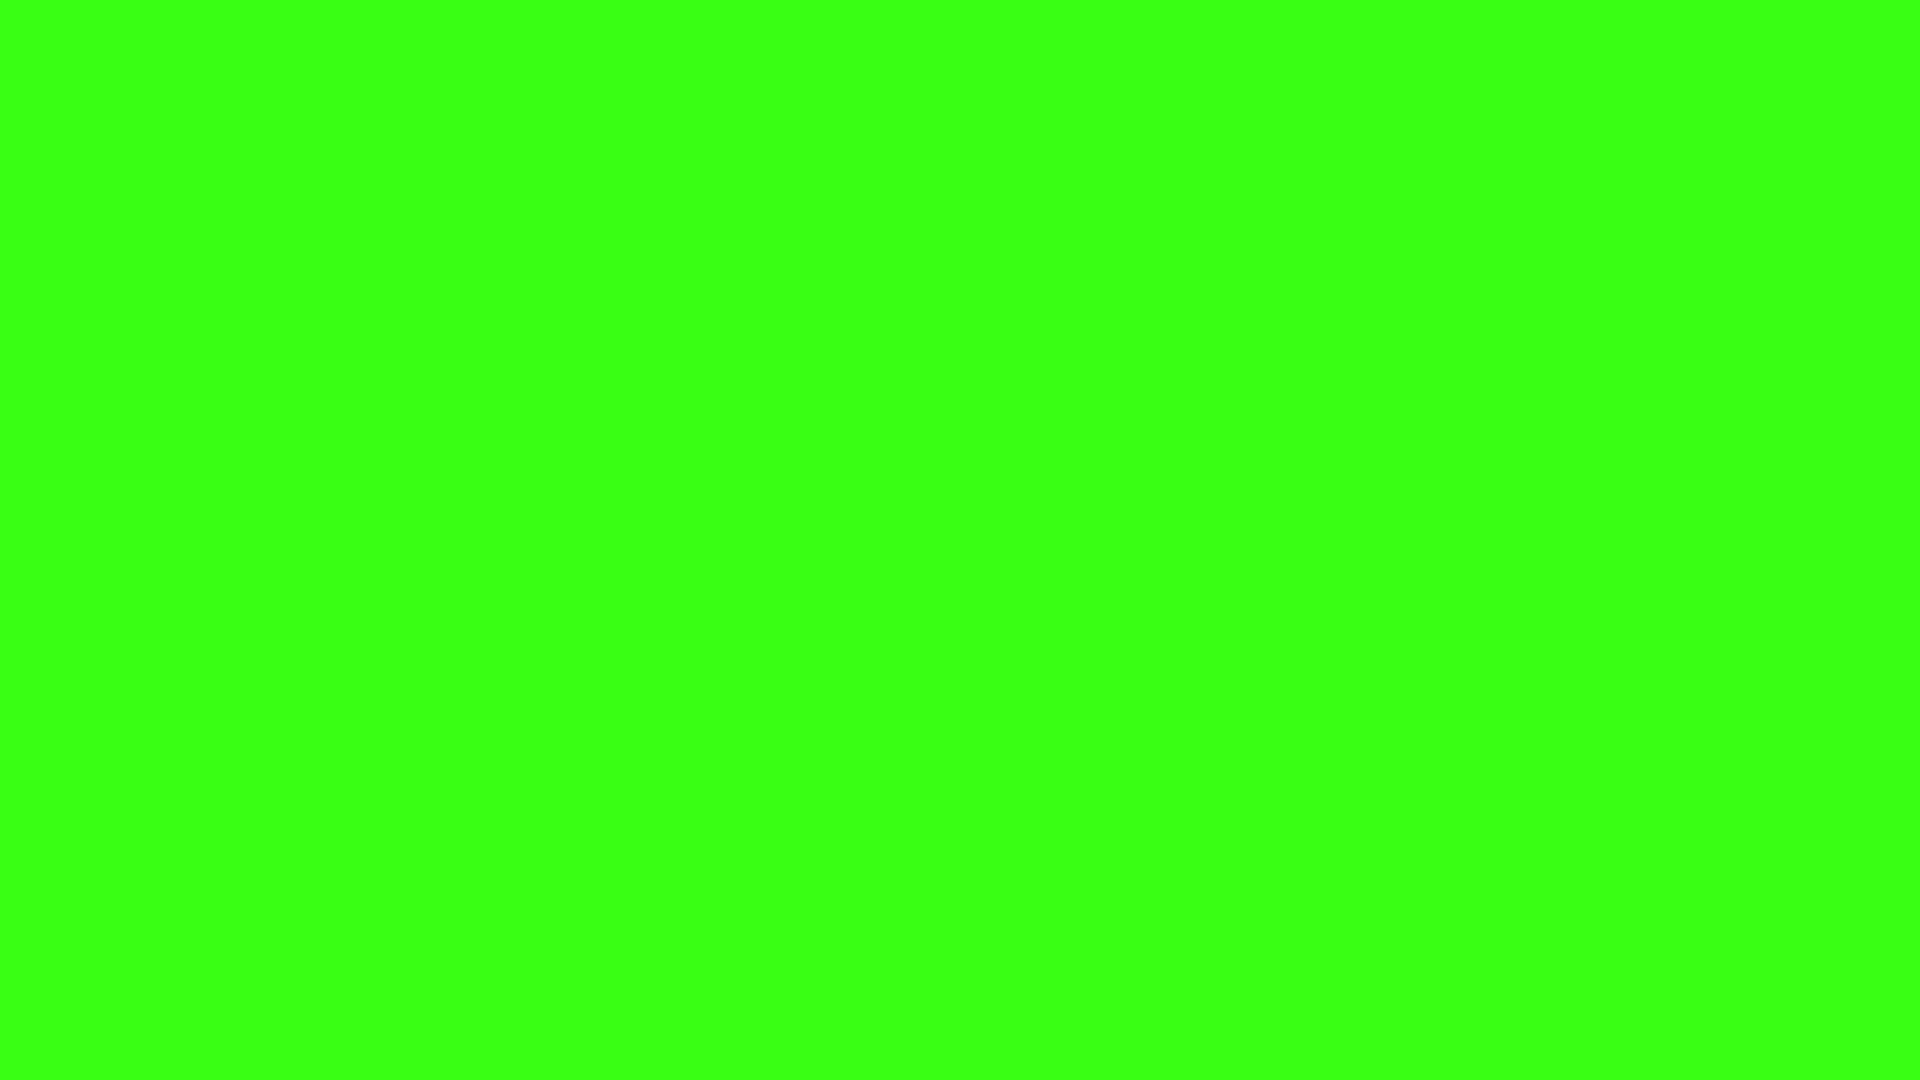 1920x1080 Neon Green Solid Color Background